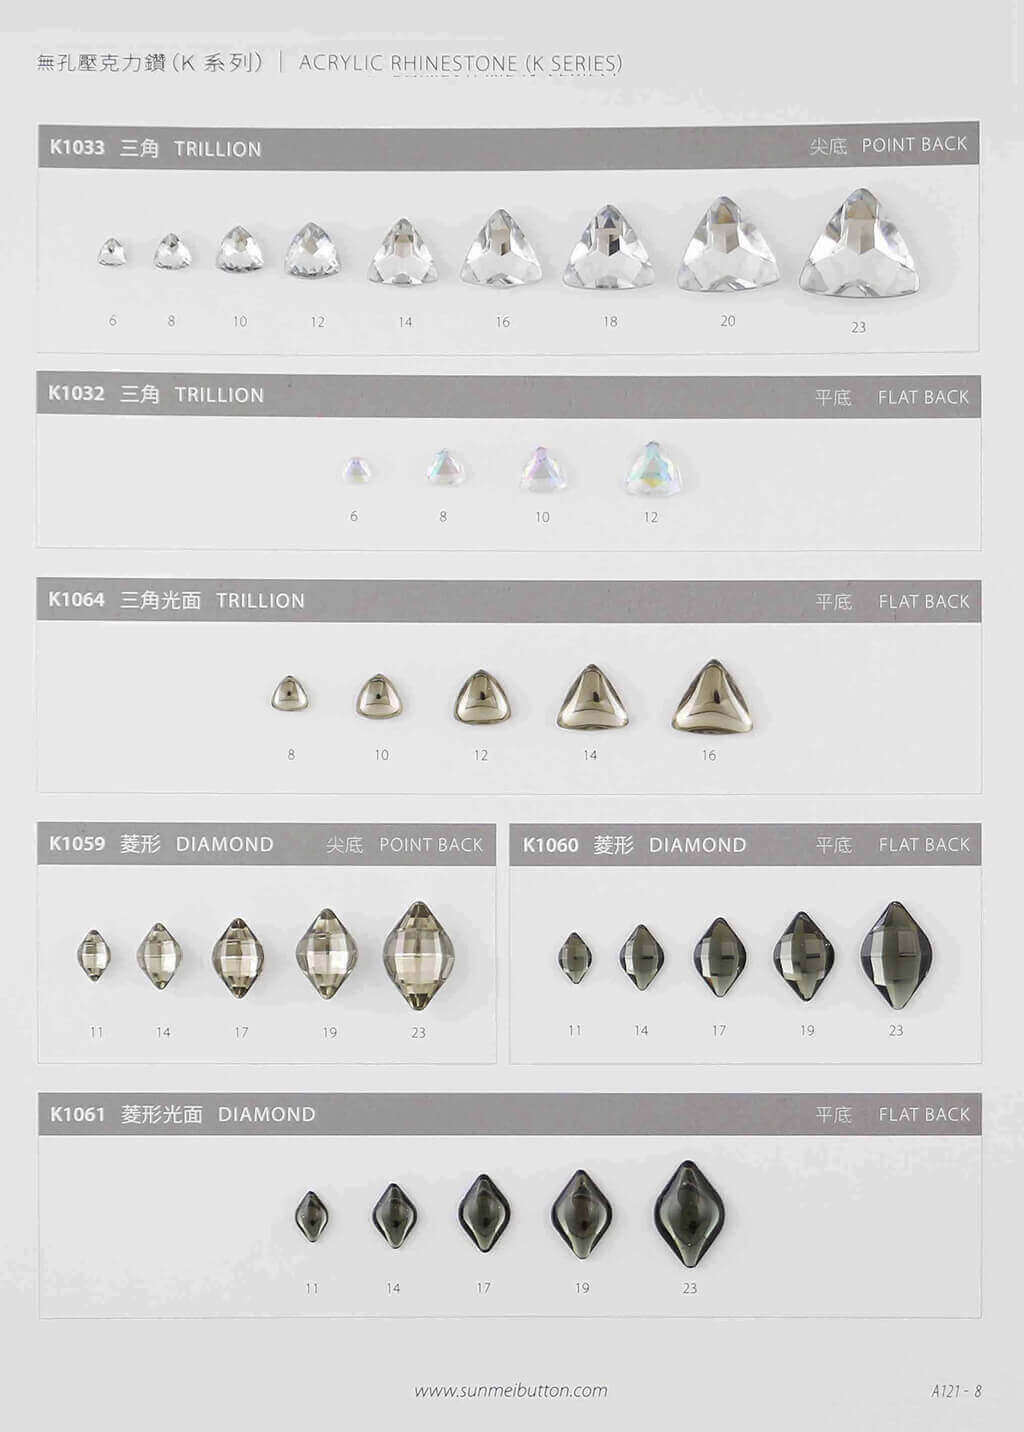 A121-8-acrylic rhinestone catalogue transparent